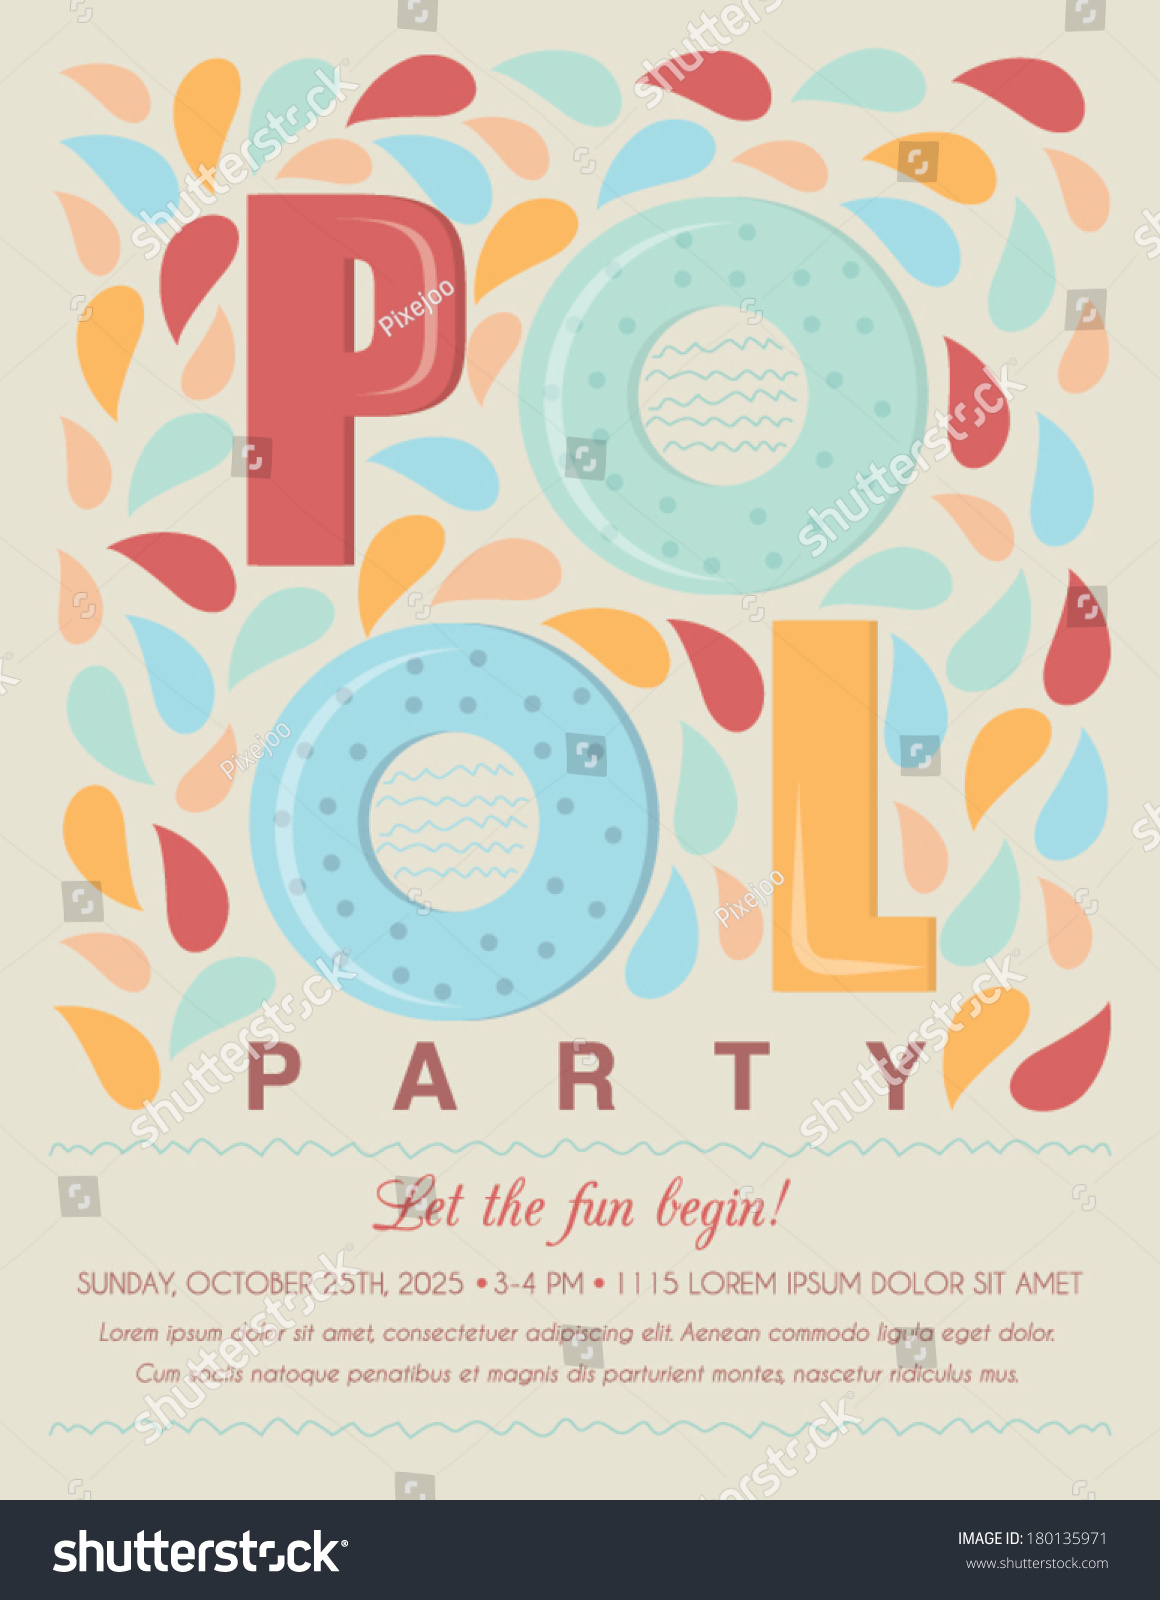 pool beach party invitation template card stock vector 180135971 pool or beach party invitation template card